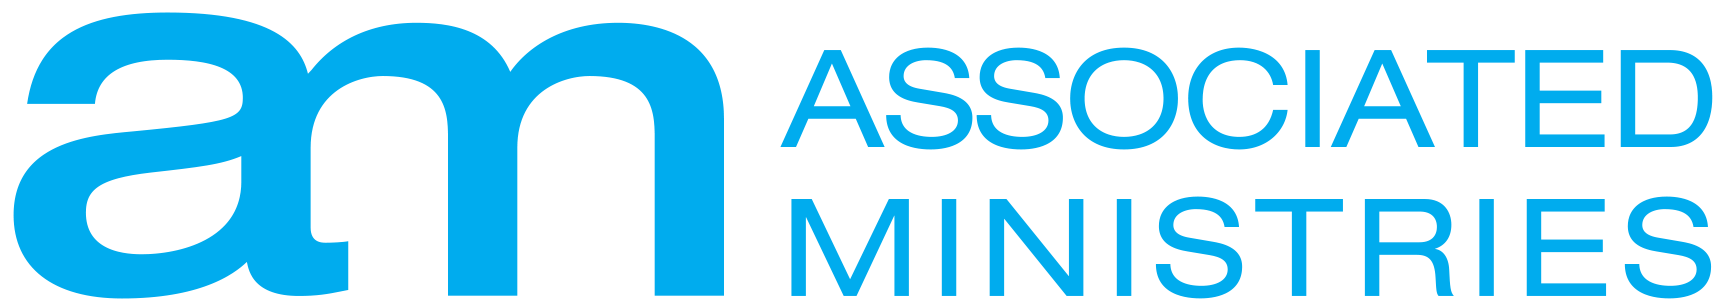 Associated Ministries logo